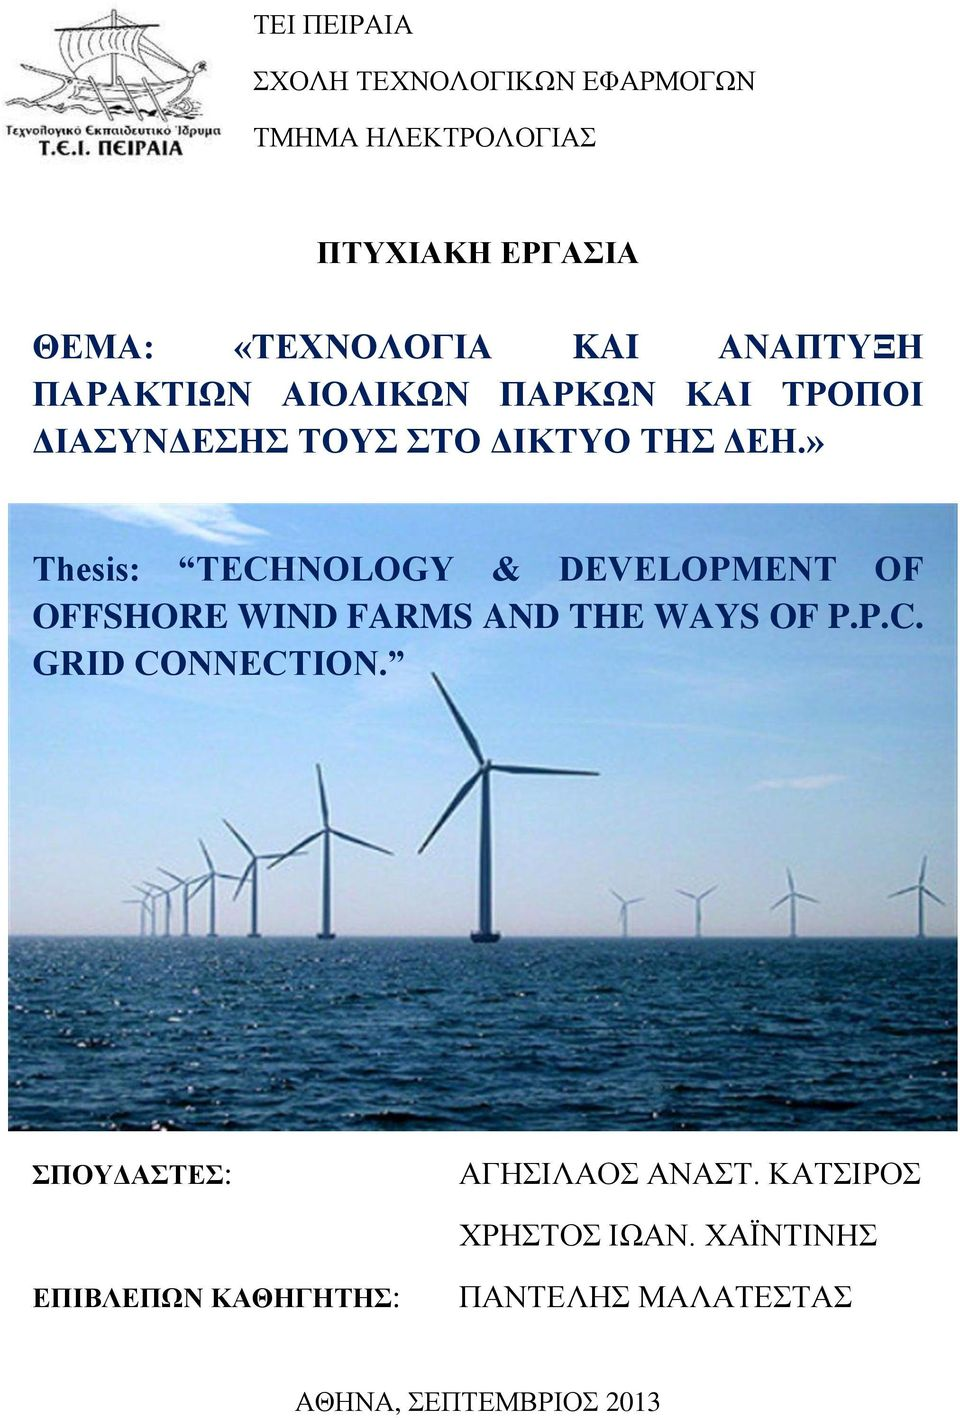 » Thesis: TECHNOLOGY & DEVELOPMENT OF OFFSHORE WIND FARMS AND THE WAYS OF P.P.C. GRID CONNECTION.